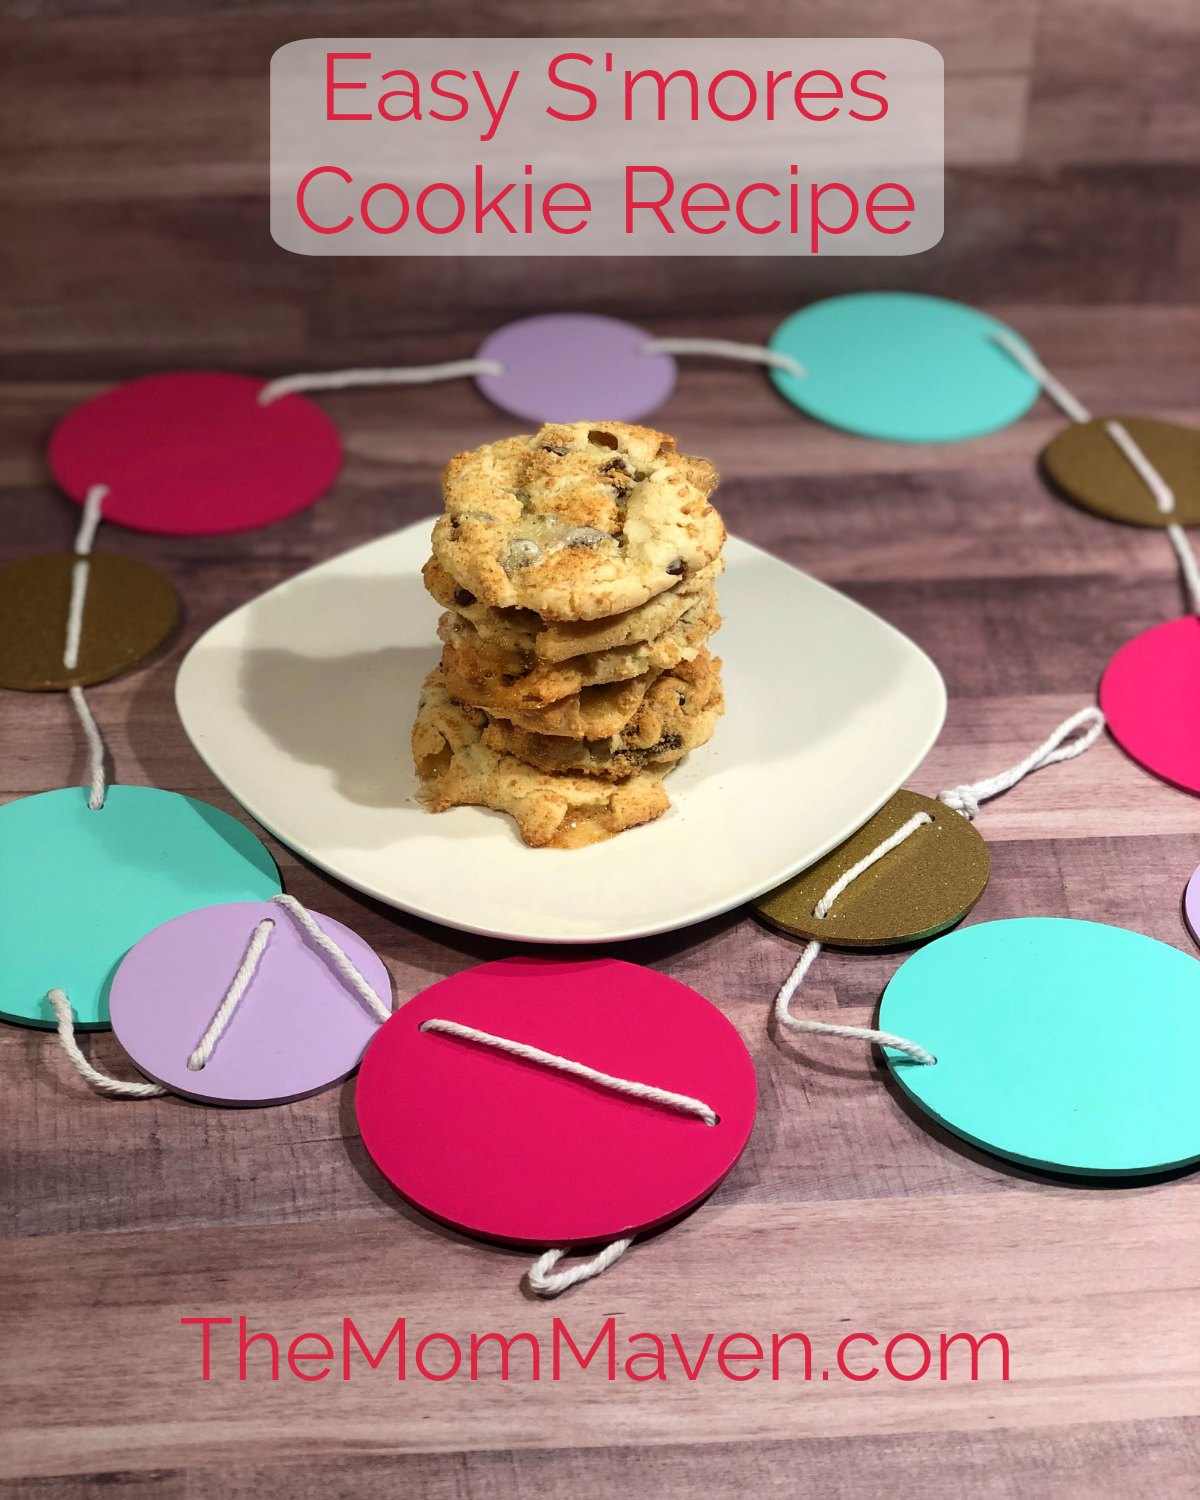 This easy S'mores Cookies Recipe starts with a cake mix base. Everyone loves these cookies and the kids will have fun helping make them.